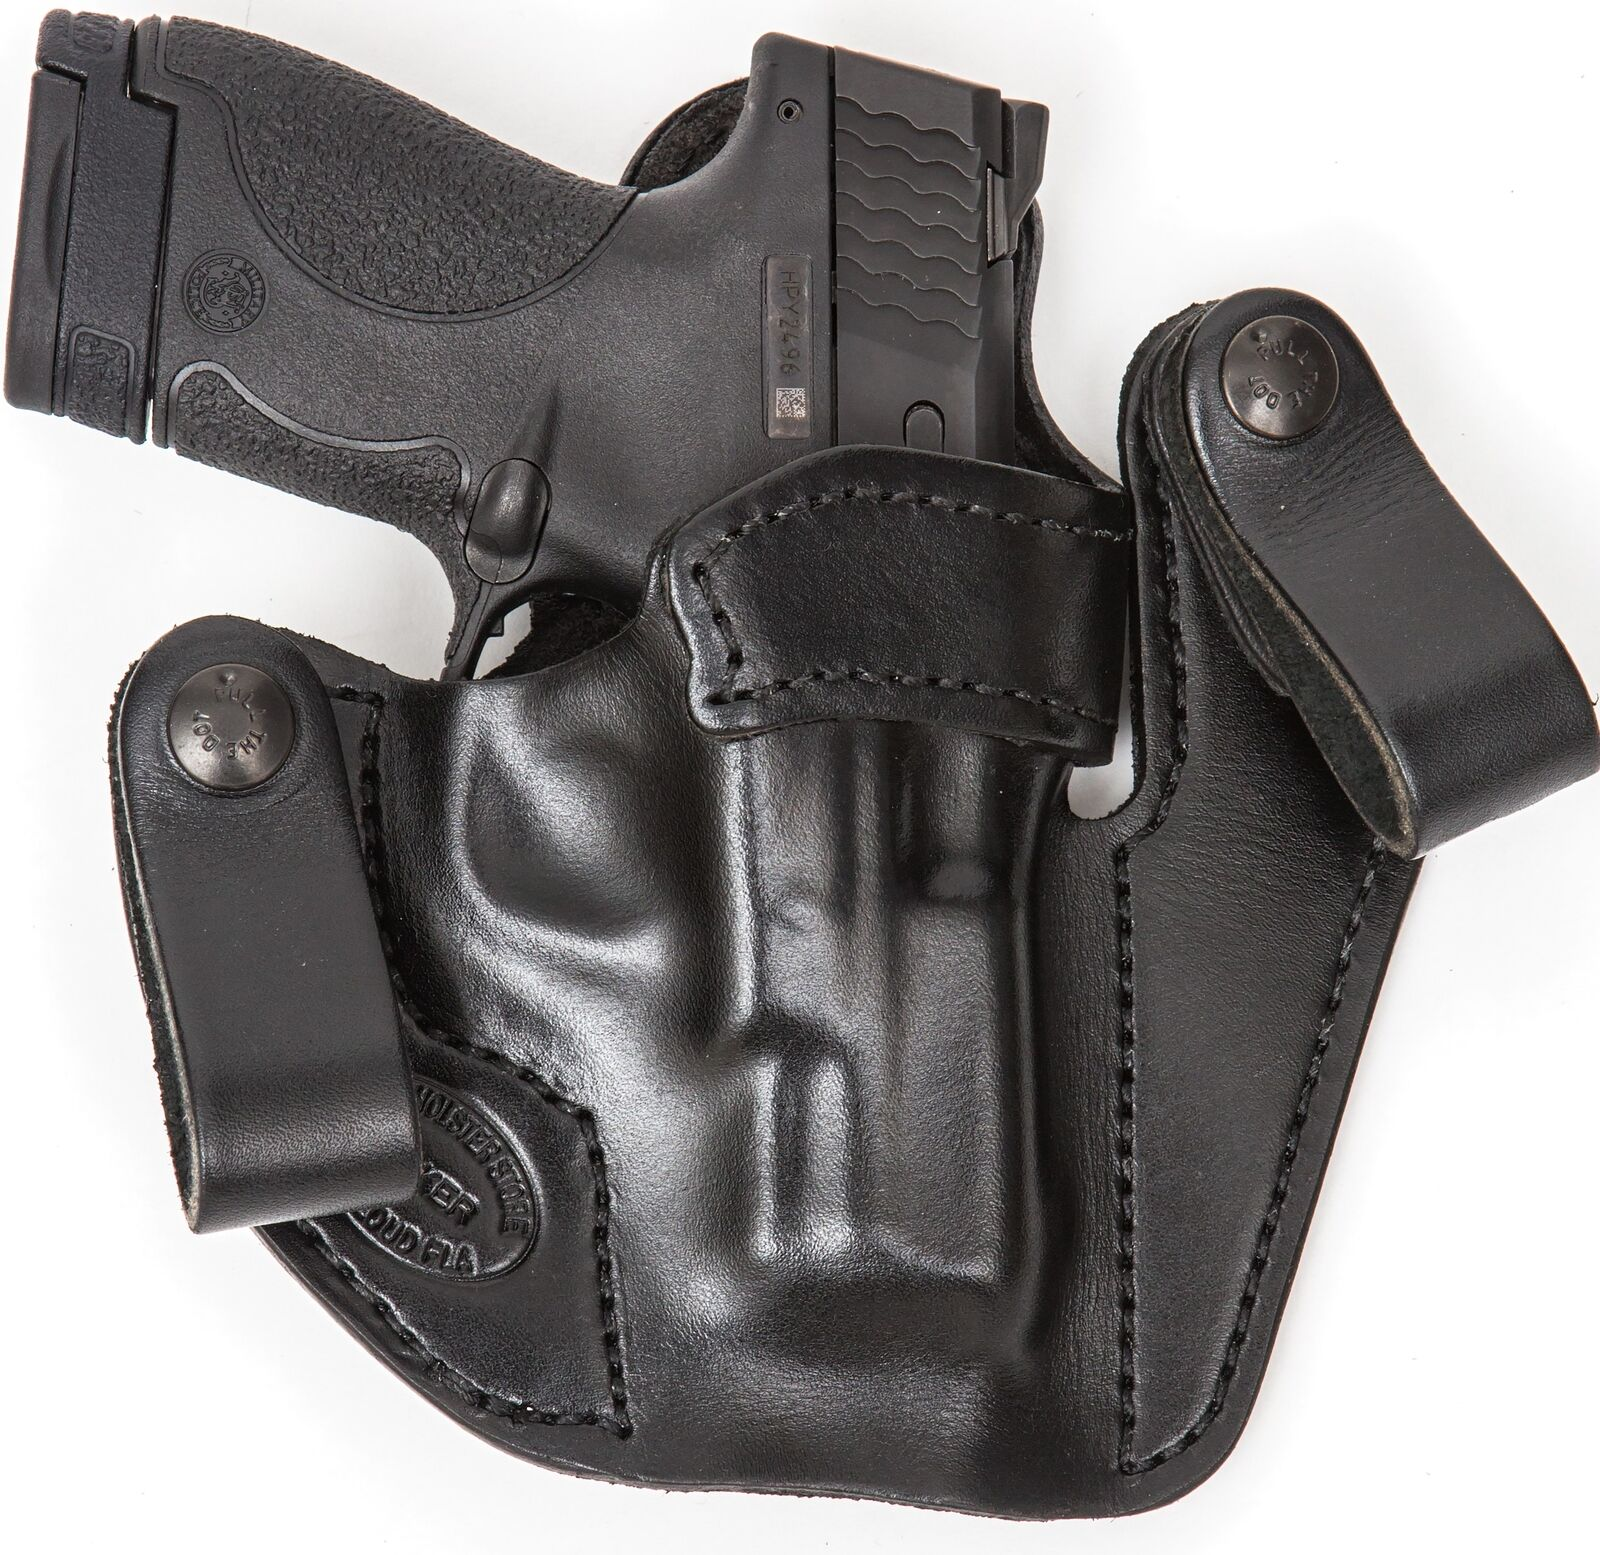 XTREME CARRY Holster RH LH IWB Leder Gun Holster CARRY For Ruger LCR w/ lasermax 28430f